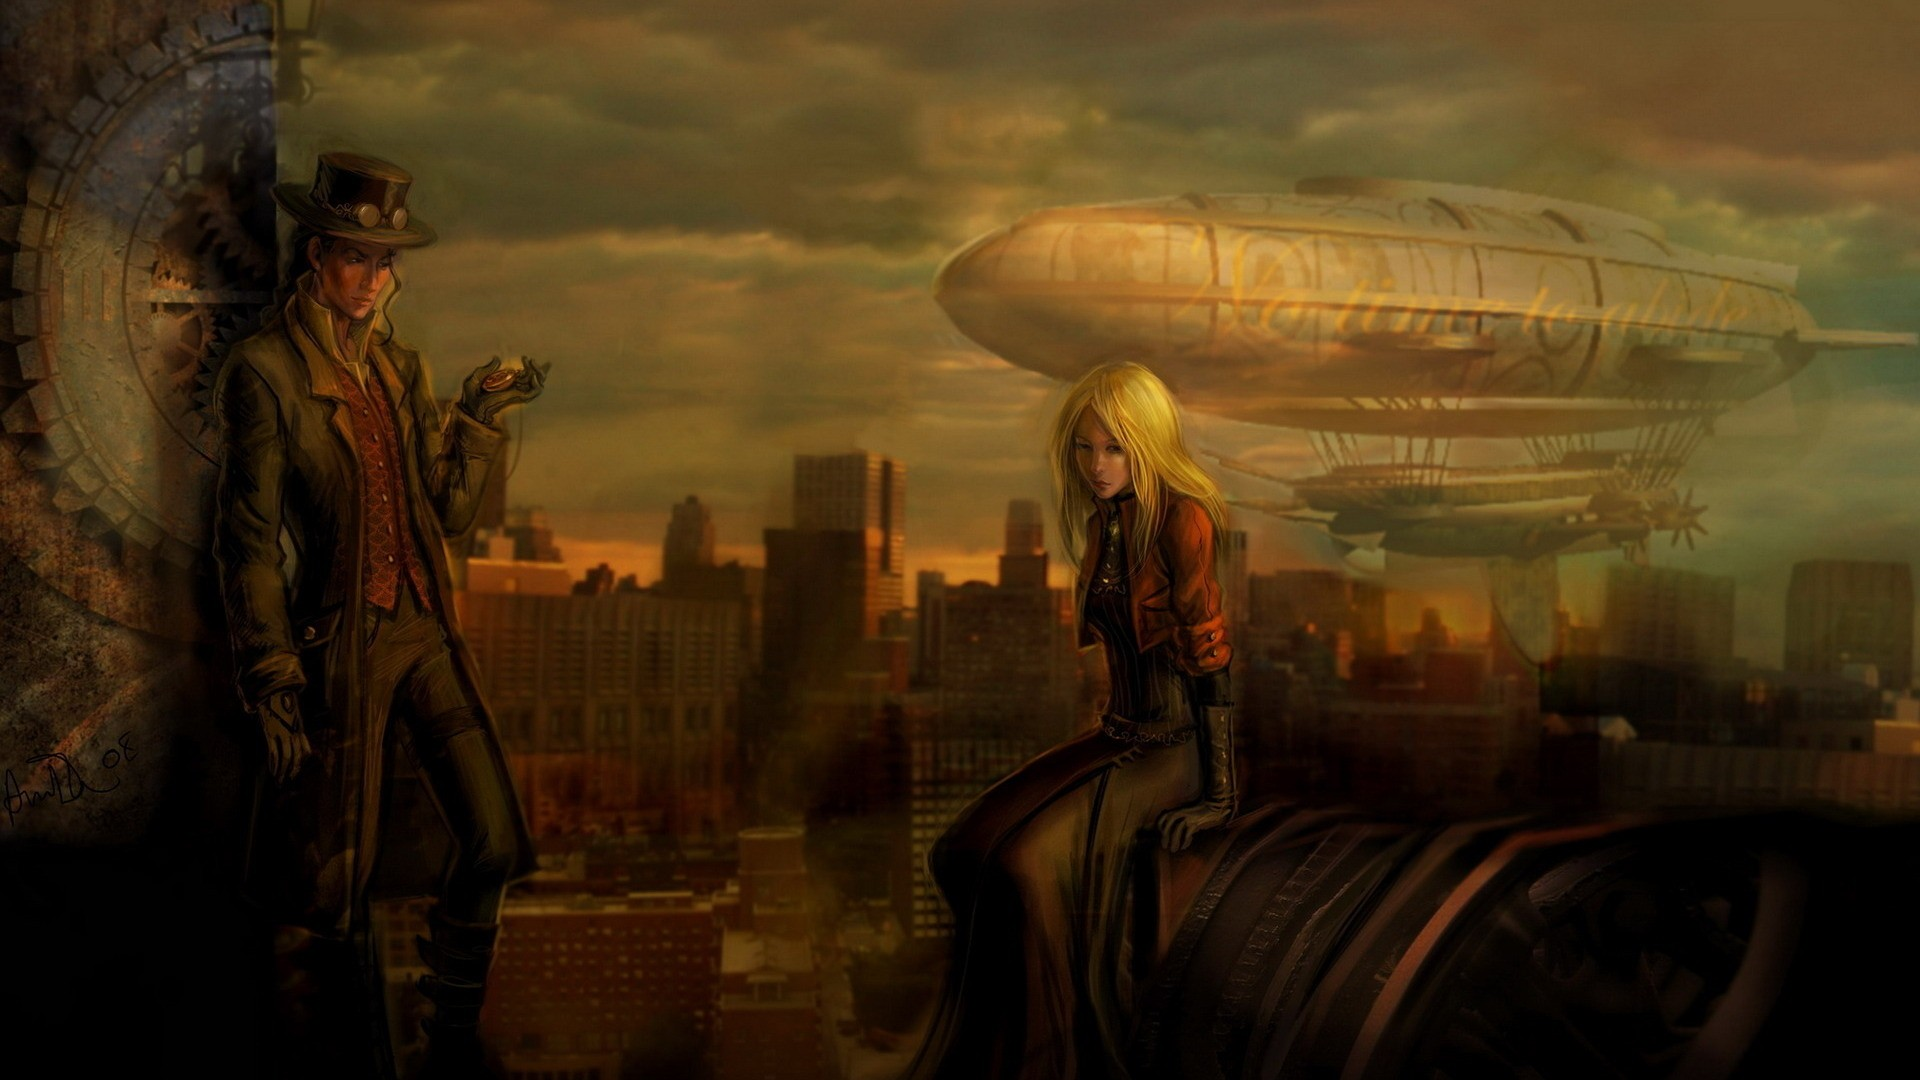 cityscapes steampunk vehicles airship HD Wallpaper